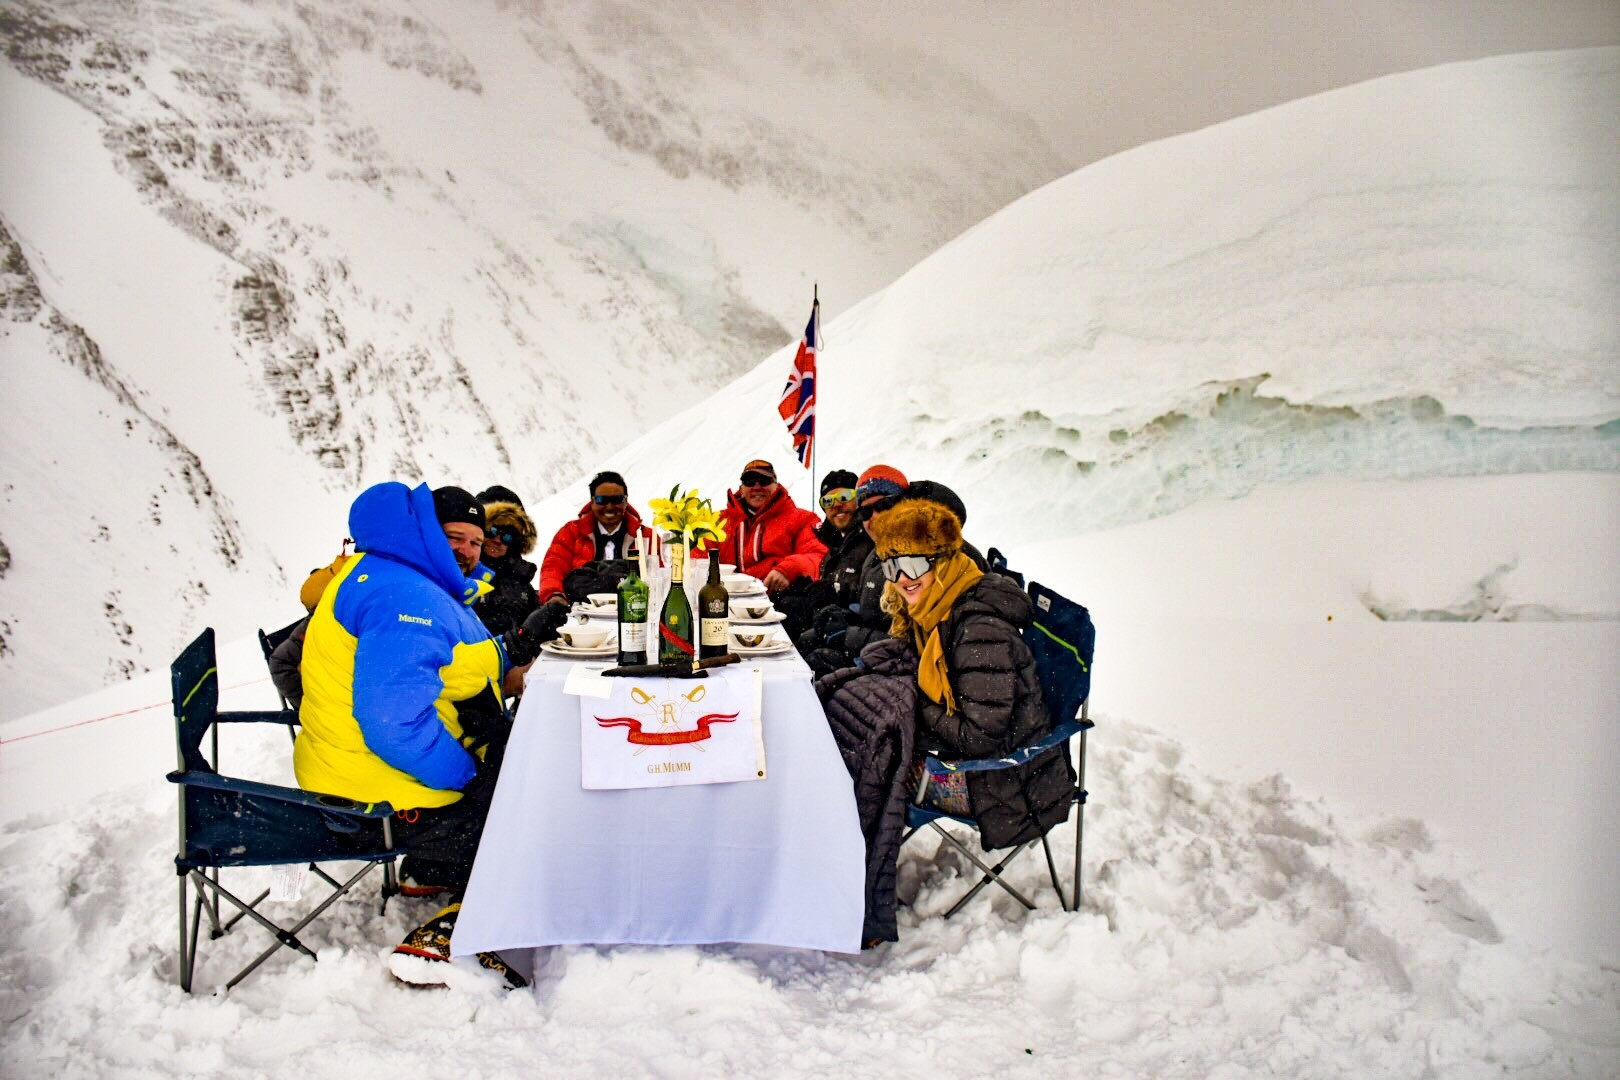 Dinner party on Everest: how we broke the world record to have the world's highest feast